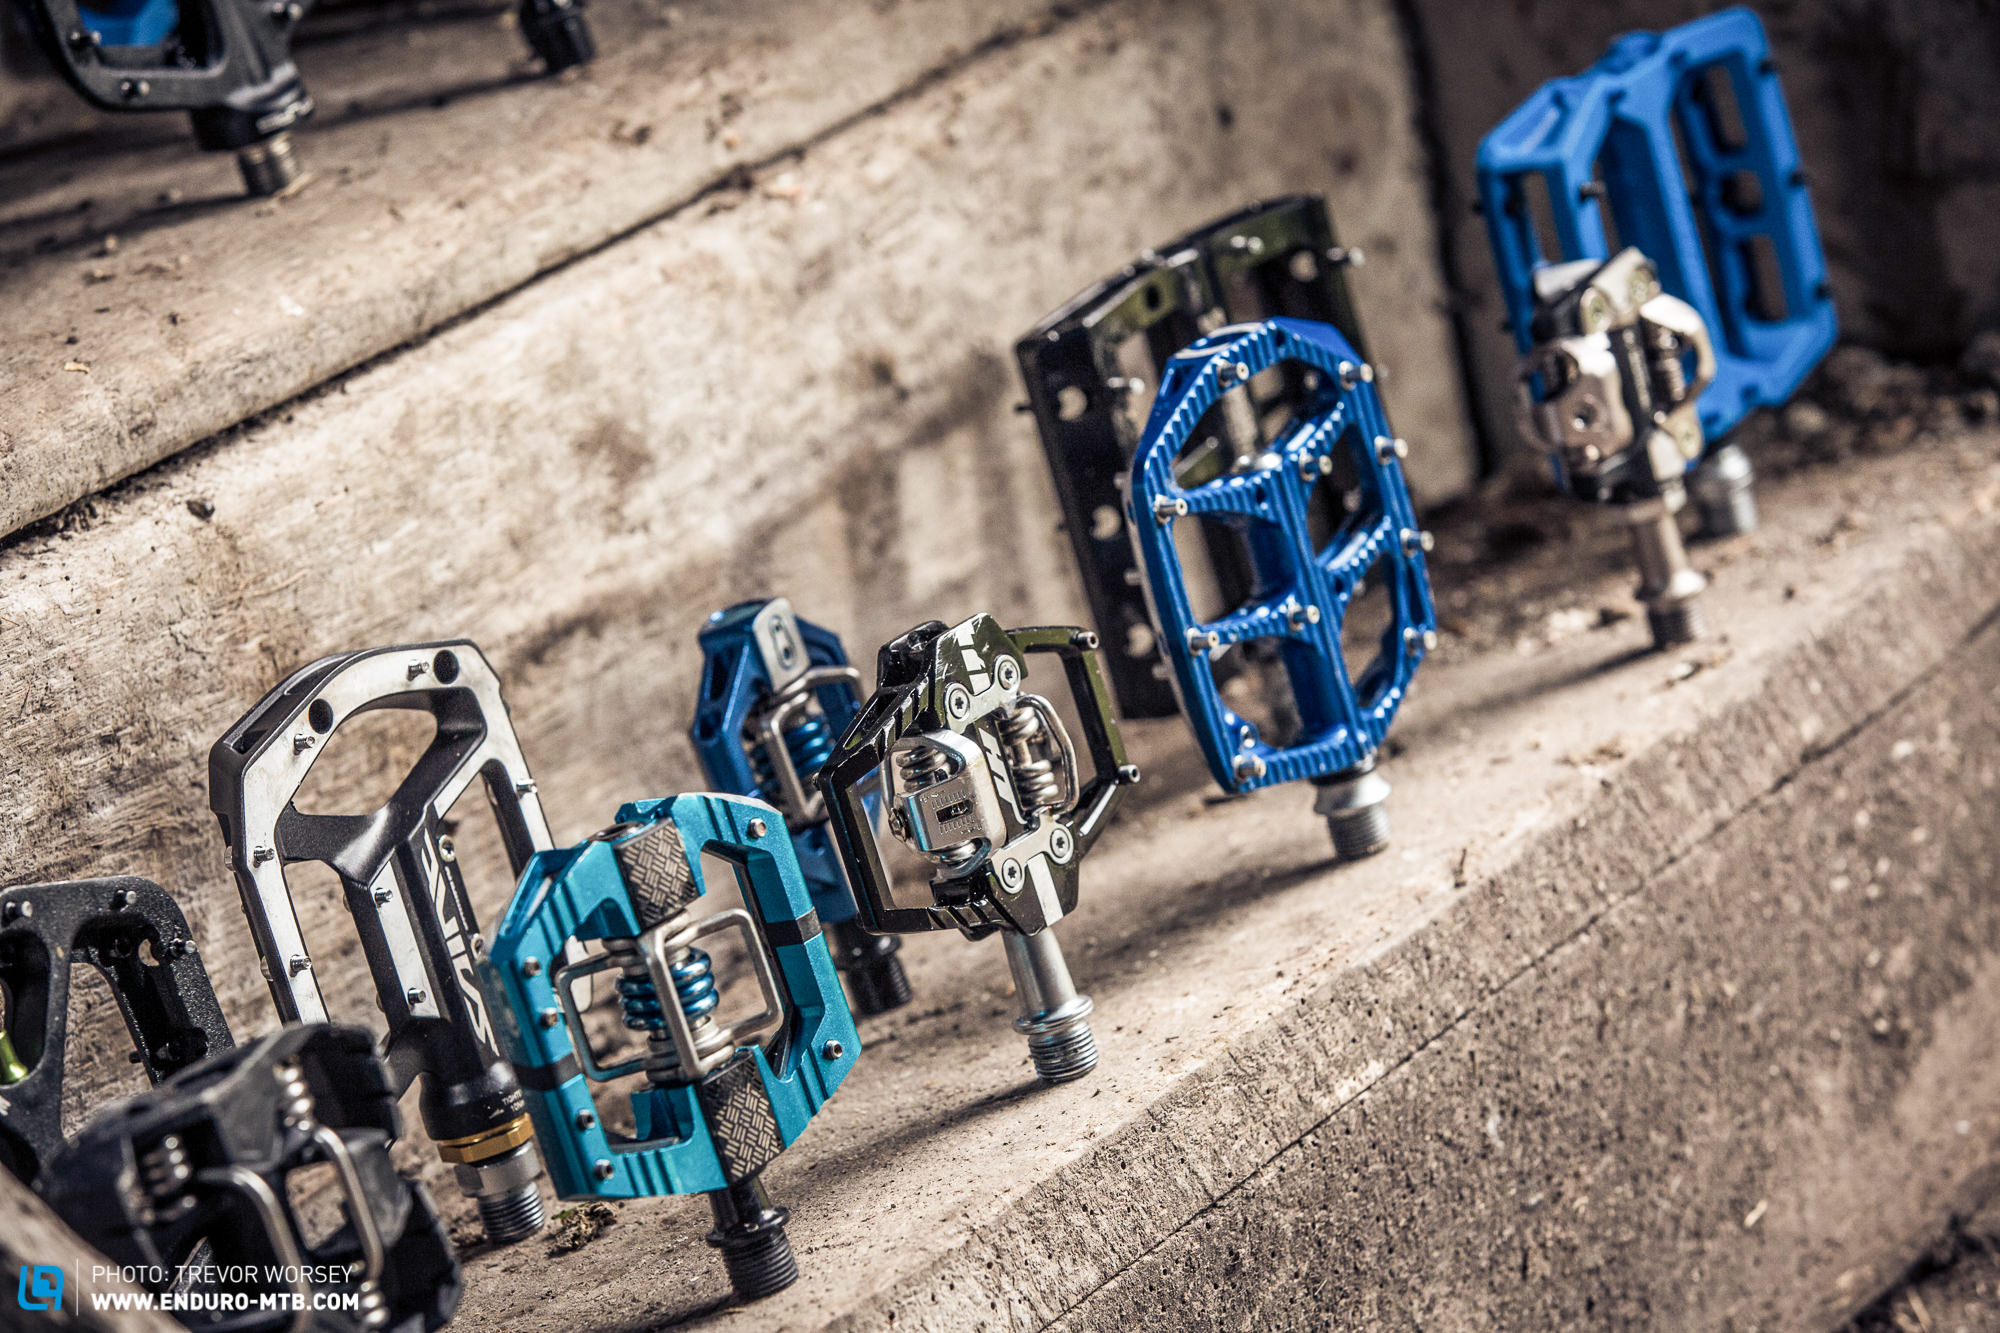 Best Pedals for Mountain Bike in 2018